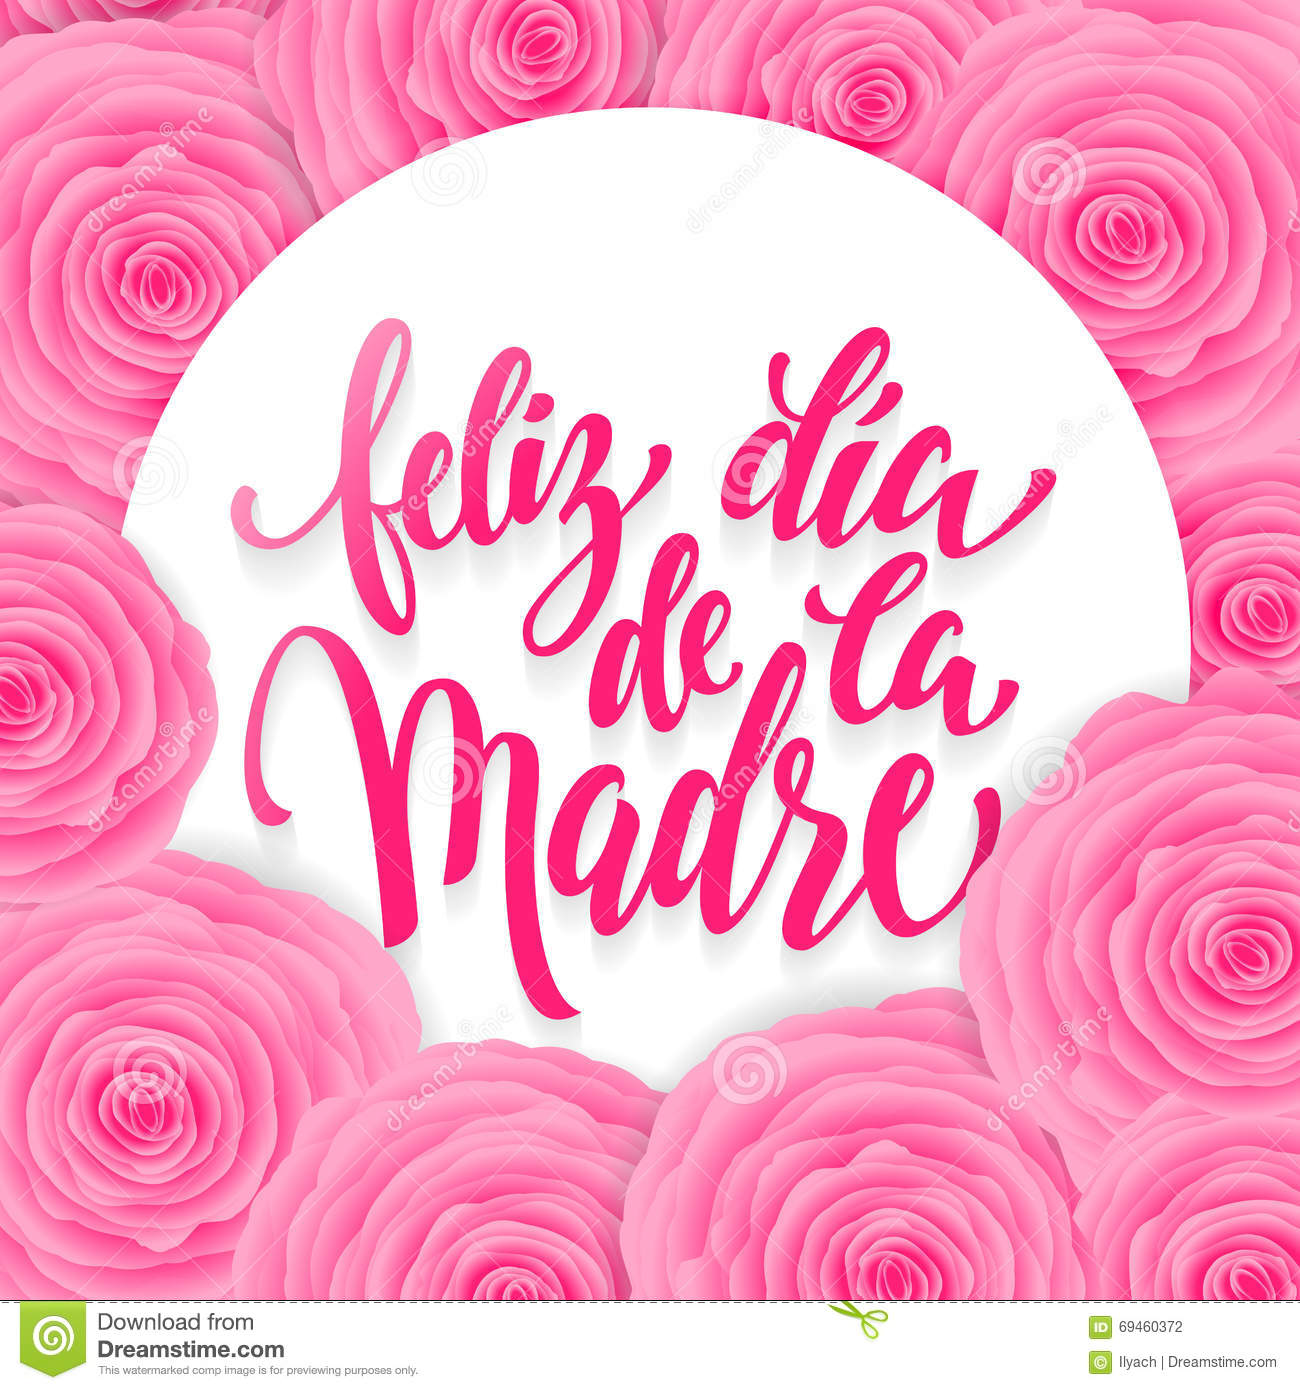 dia de las madres wallpaper - photo #28